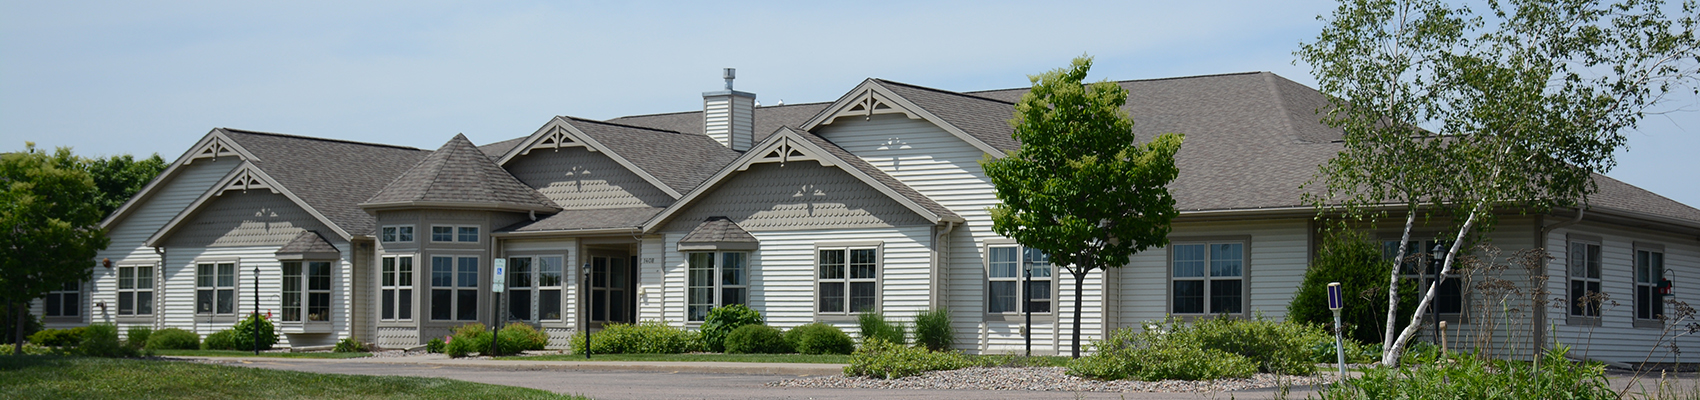 Copperleaf Assisted Living of Schofield, WI